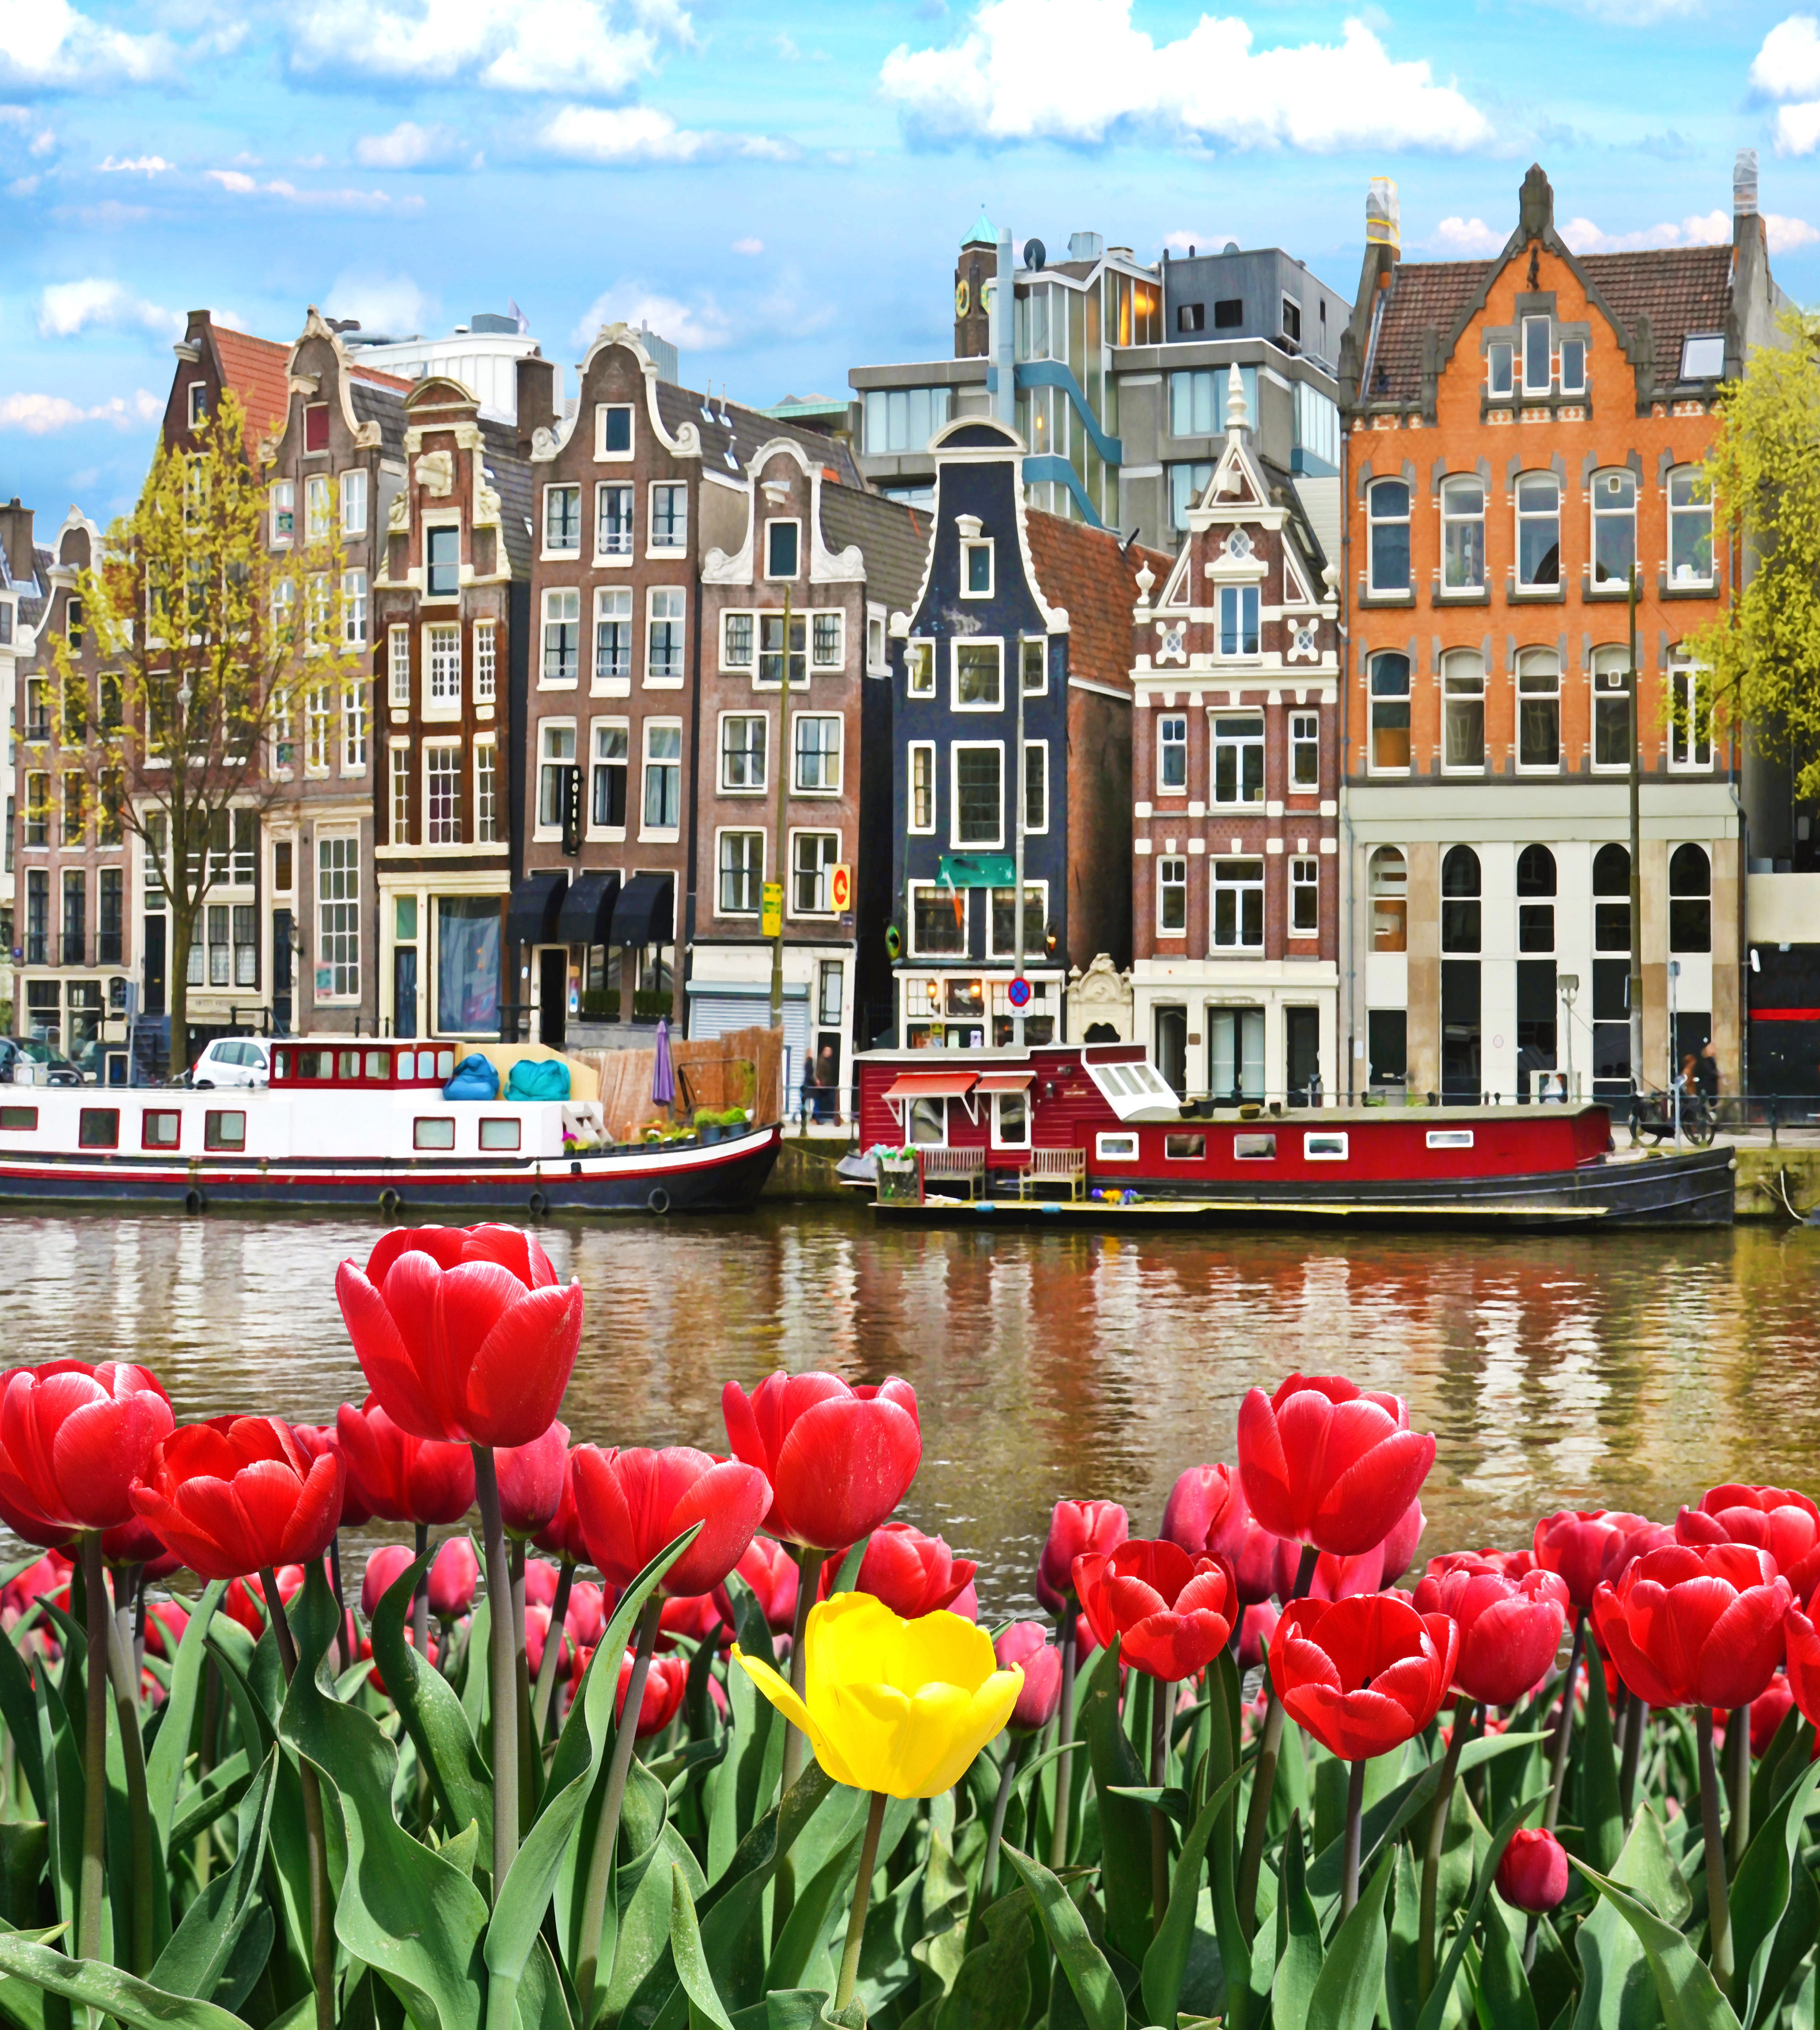 Wowcher: Beautiful Landscape With Tulips And Houses In Amsterdam